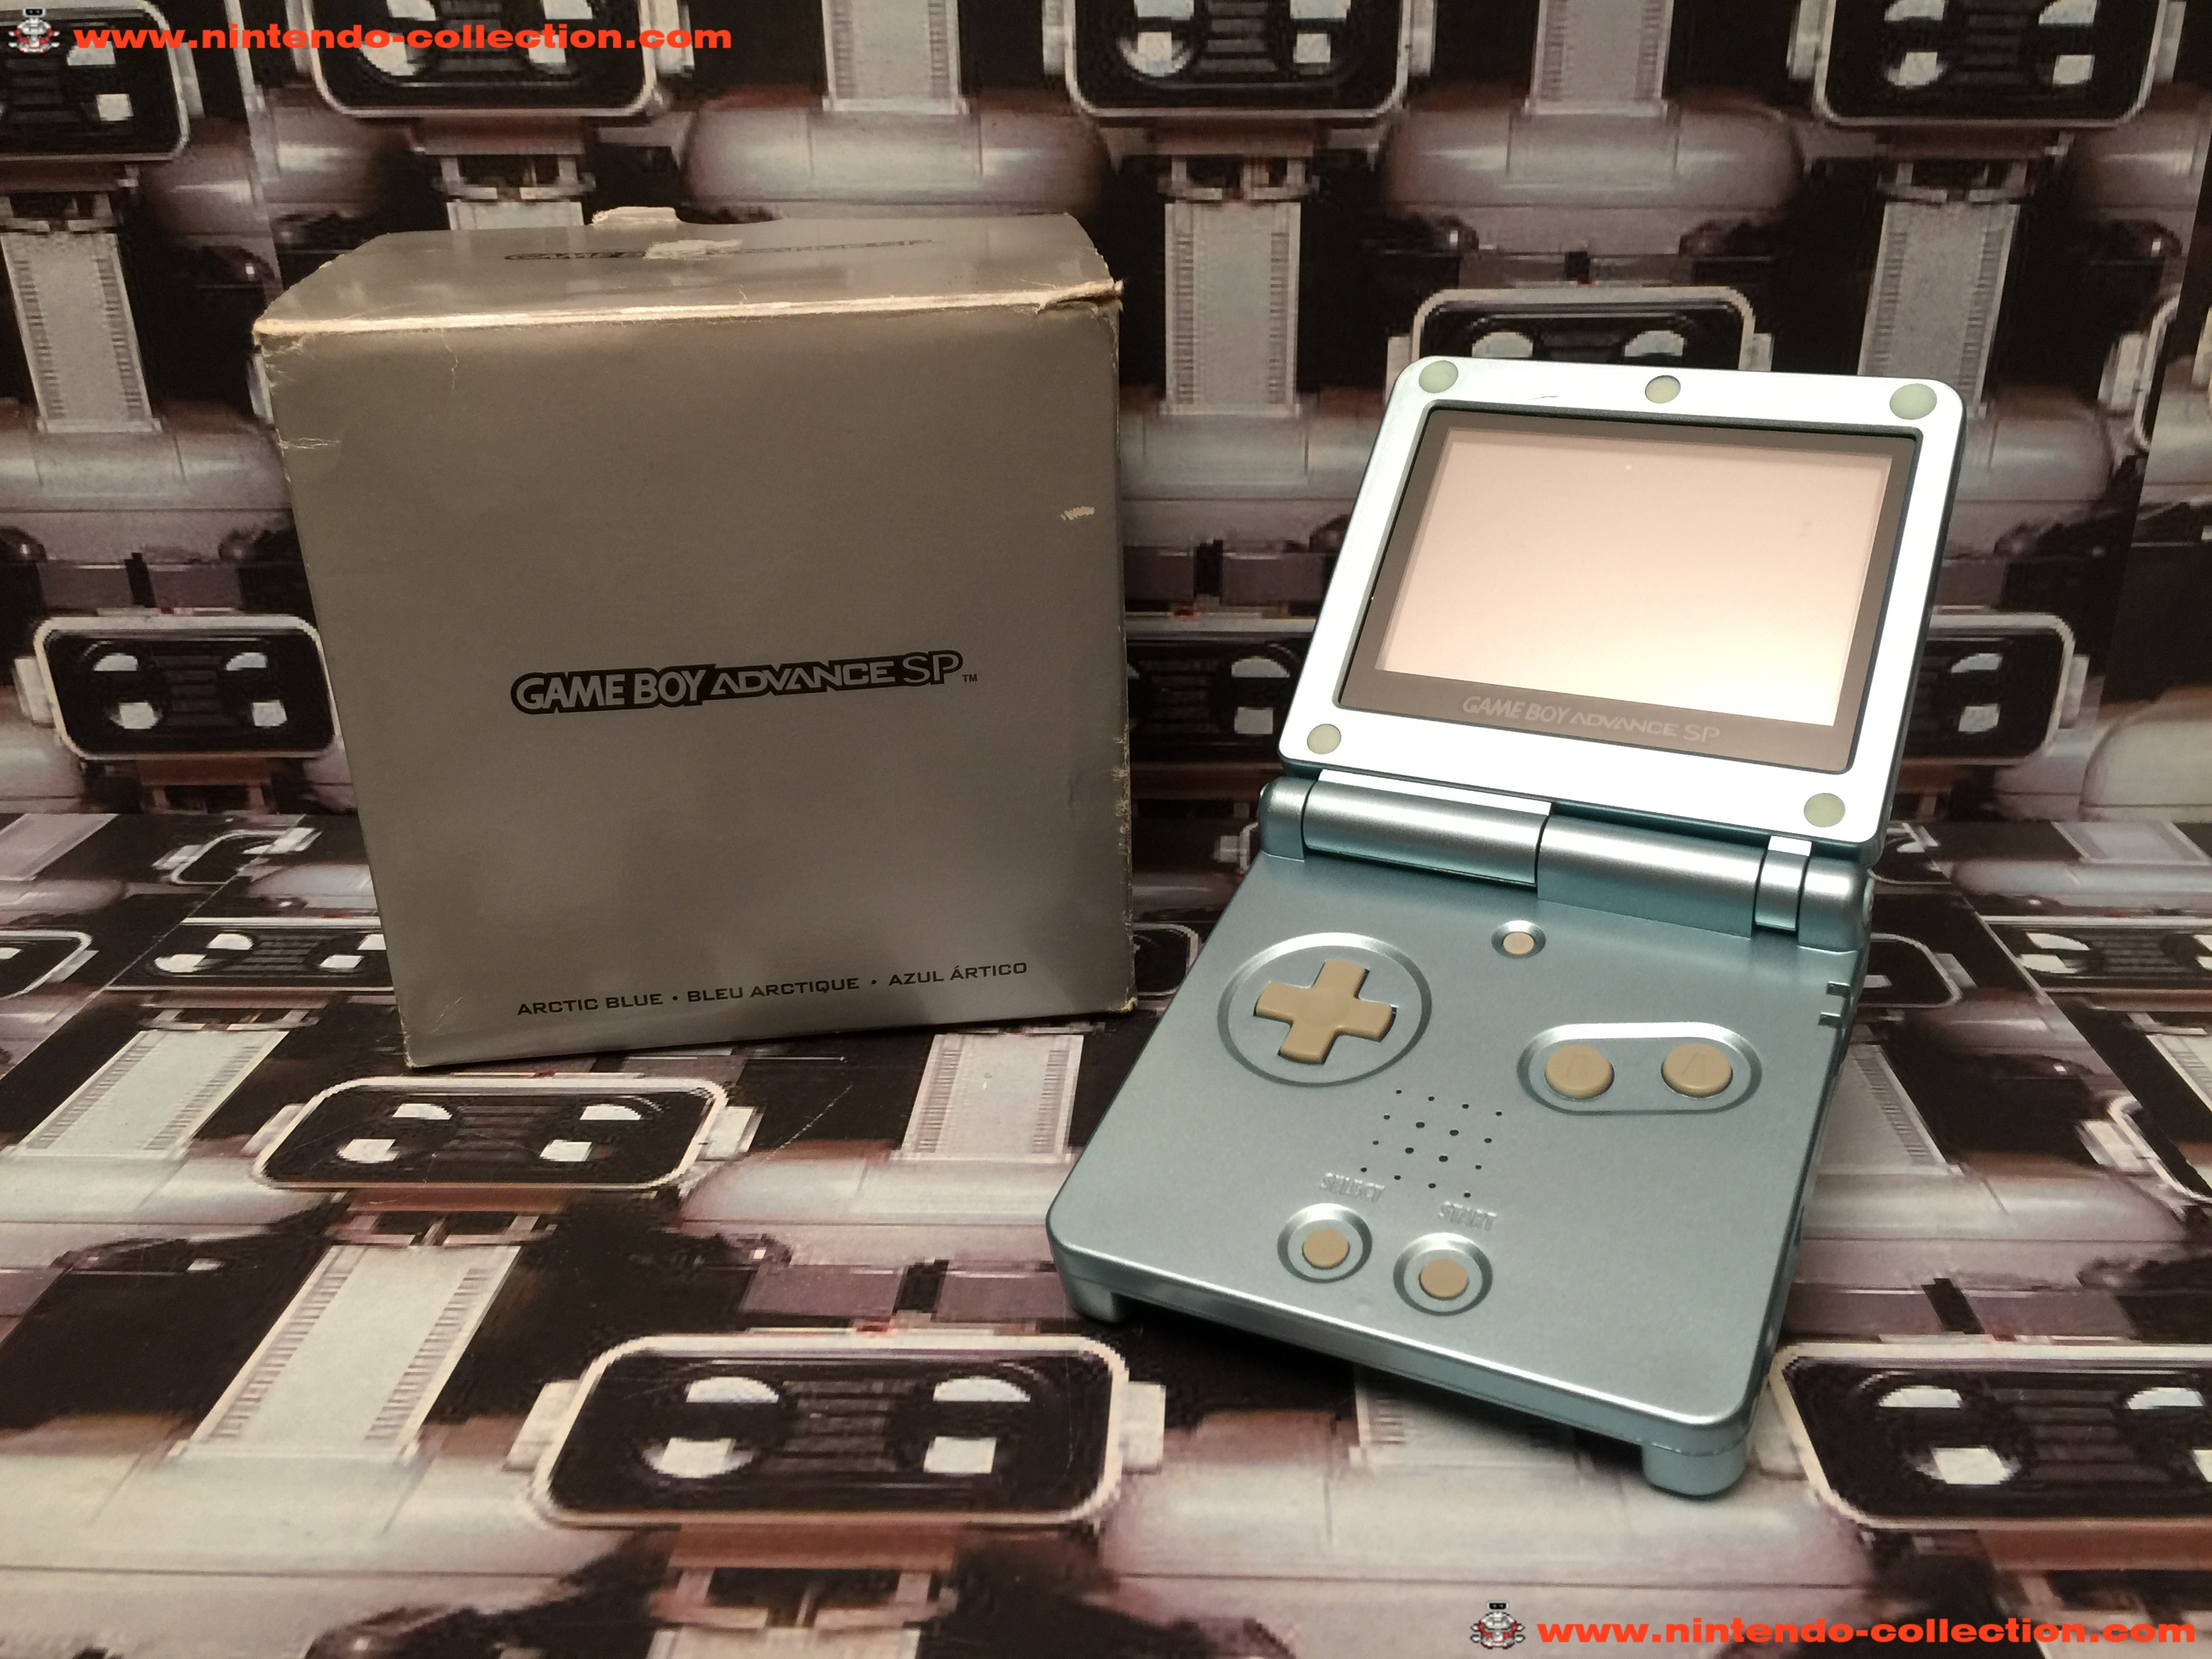 www.nintendo-collection.com - Gameboy Advance GBA SP Artic Blue Bleu Arctique Edition europeenne eur